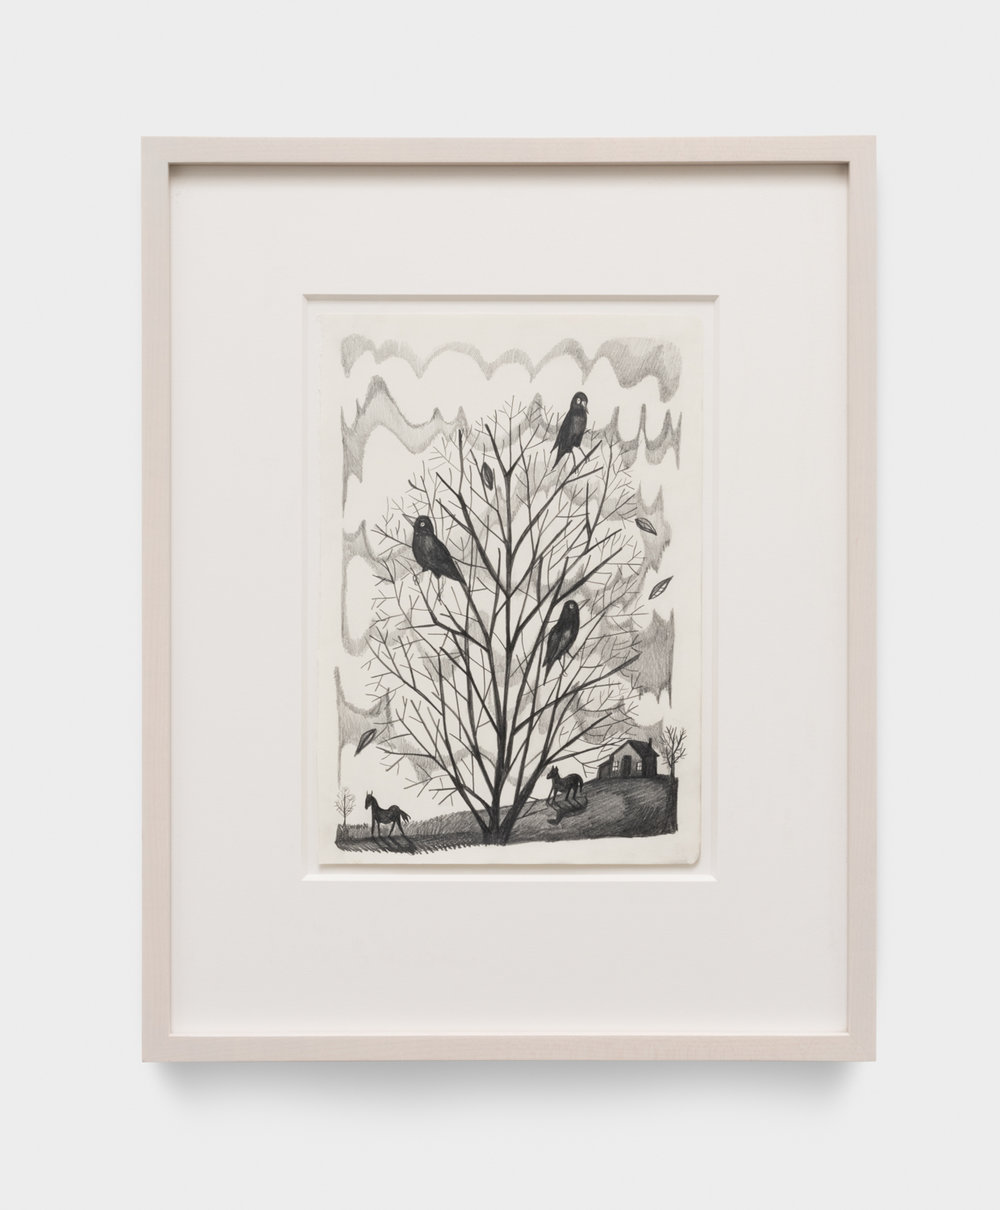 Nikki Maloof  Starlings  2017 Graphite on paper 11 ¾h x 8 ¼w in 19h x 15 ½w in framed NM025